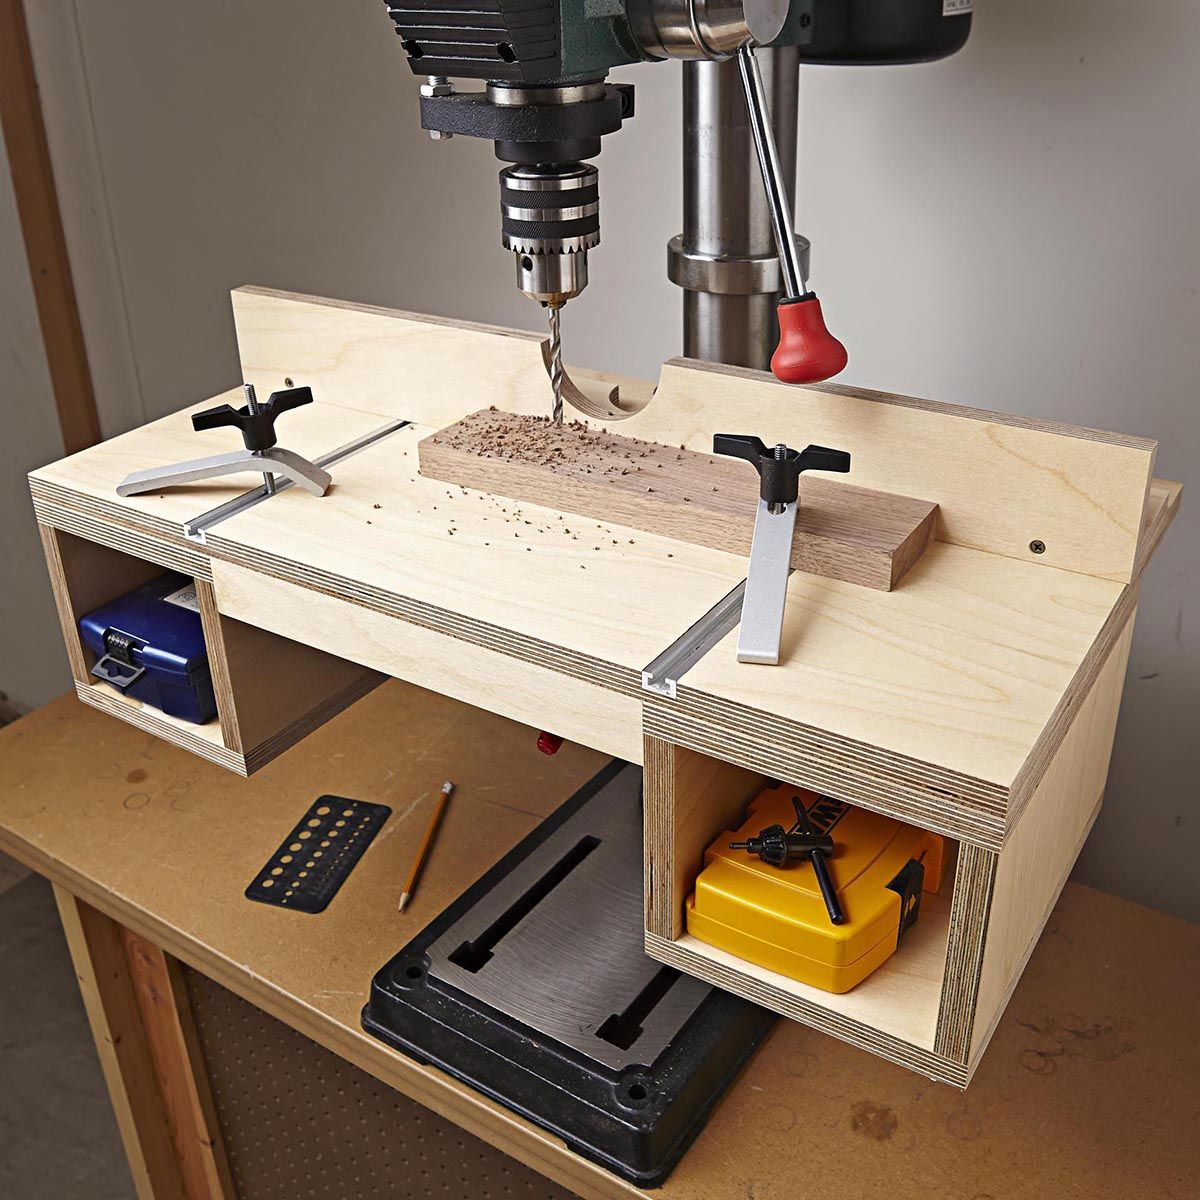 Doitall drillpress table woodworking plan from wood